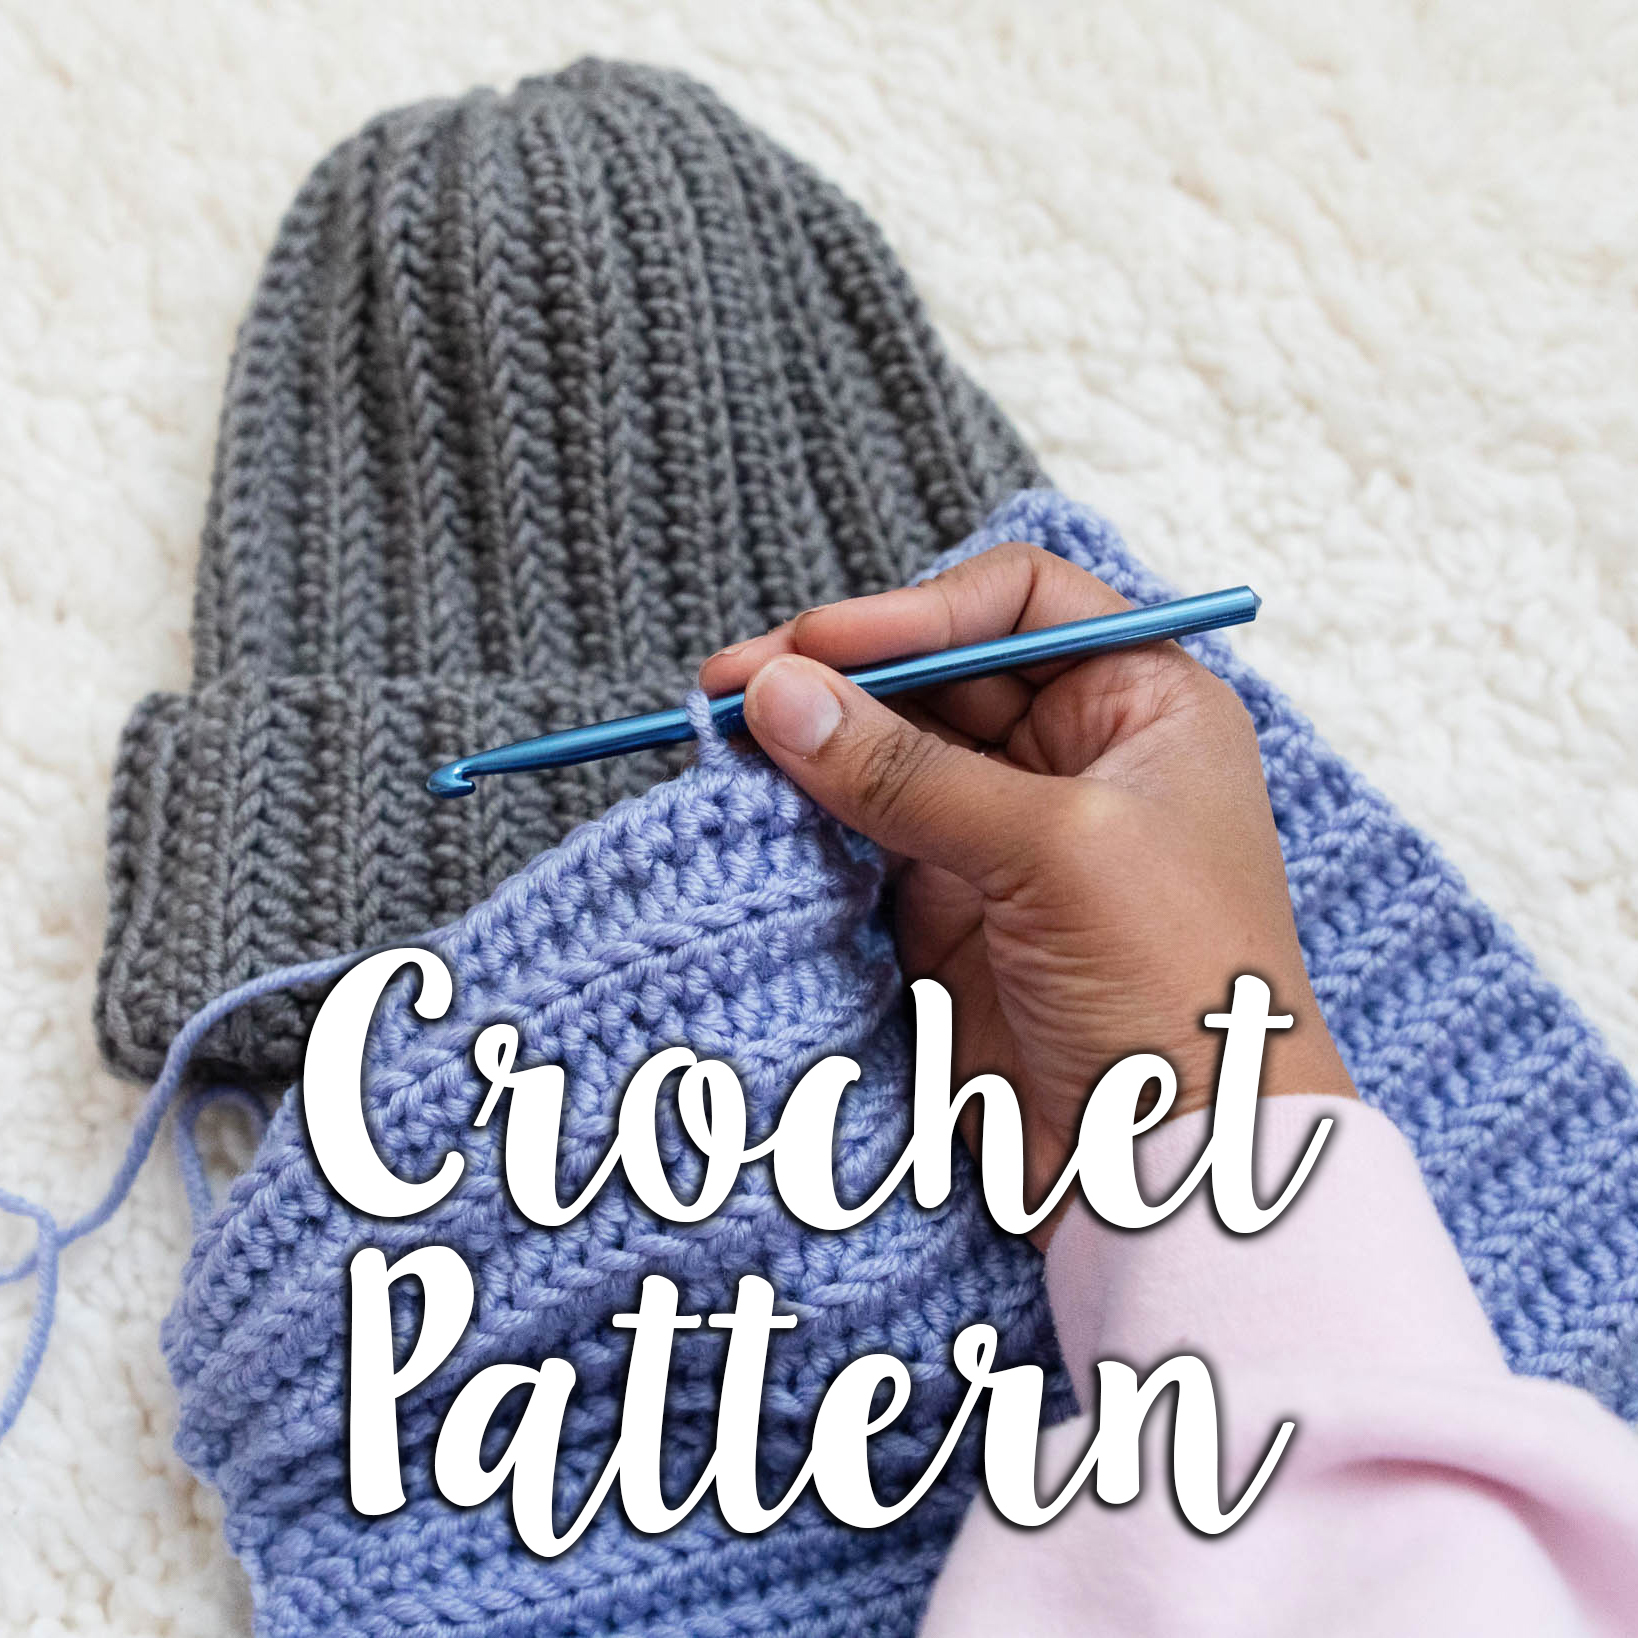 Click here to purchase the pattern!